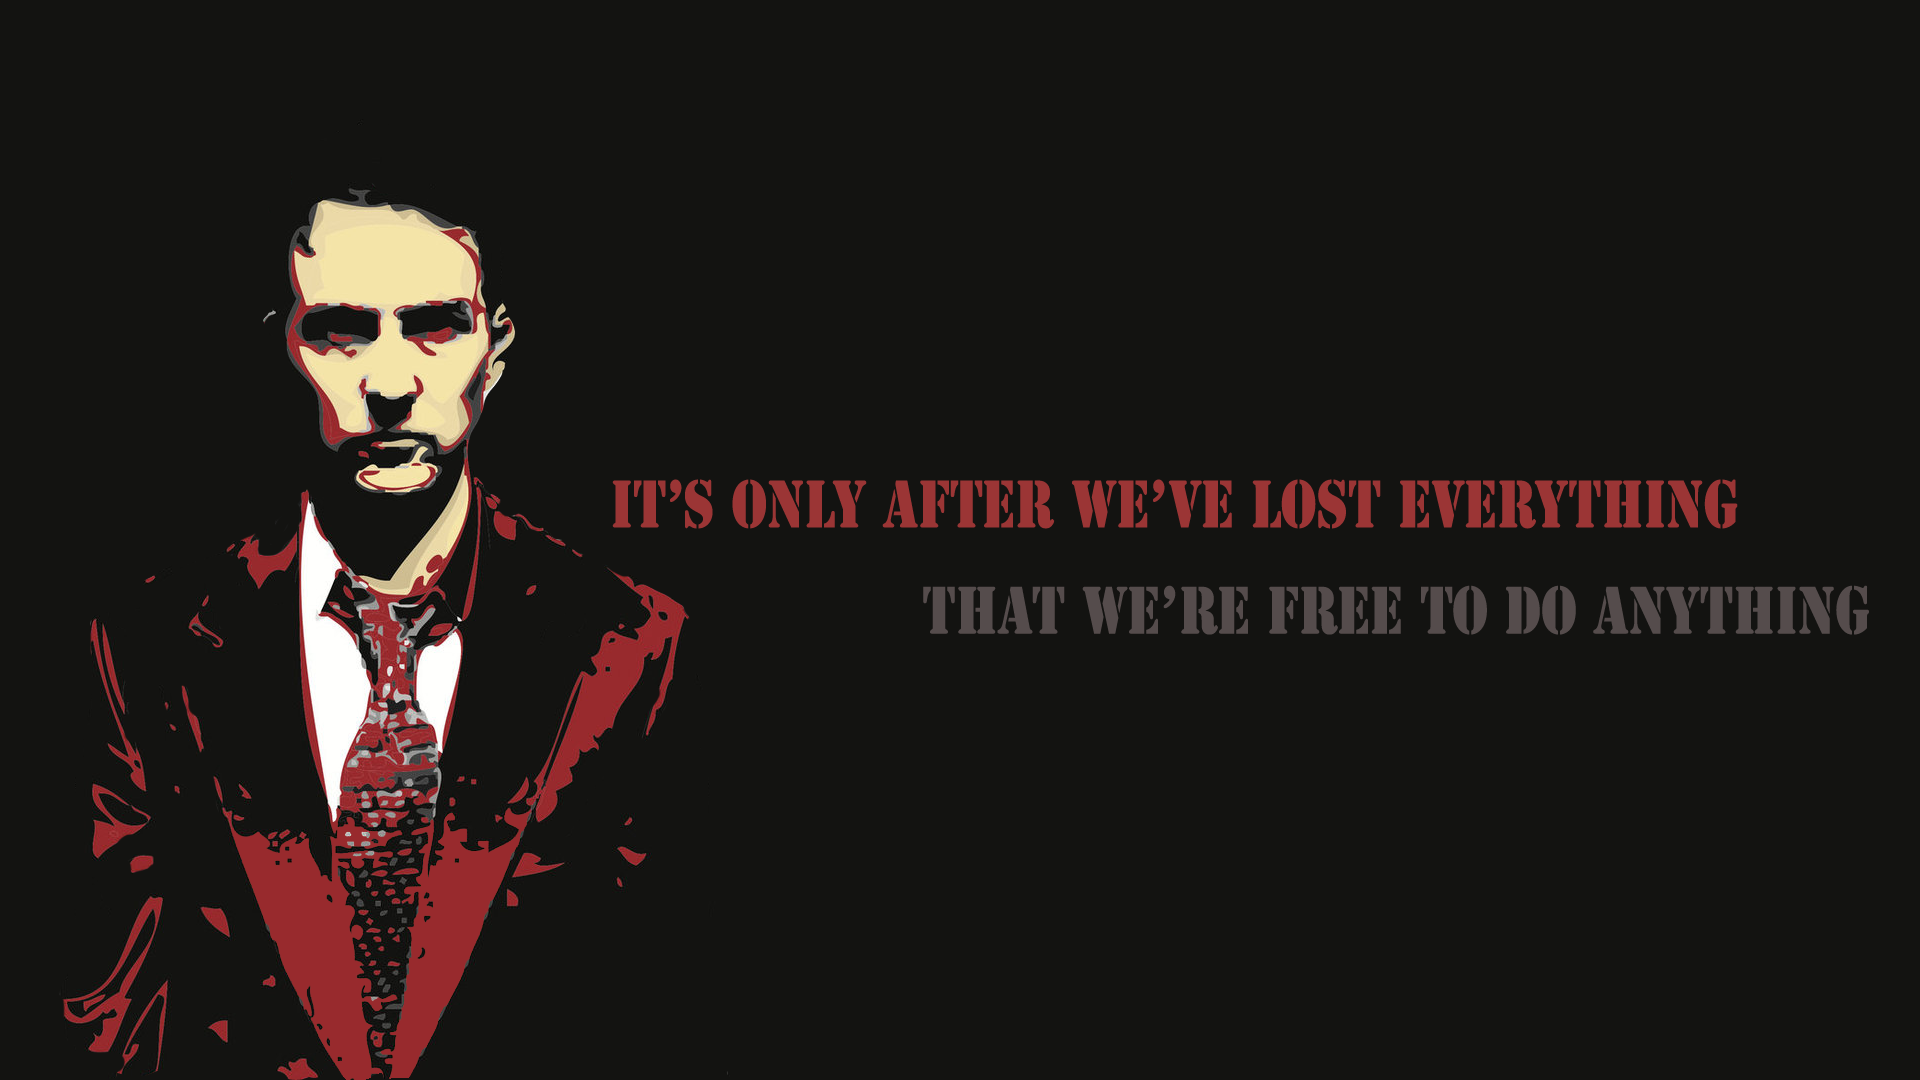 Movie - Fight Club  - Quote - Anarchy - Dark Wallpaper